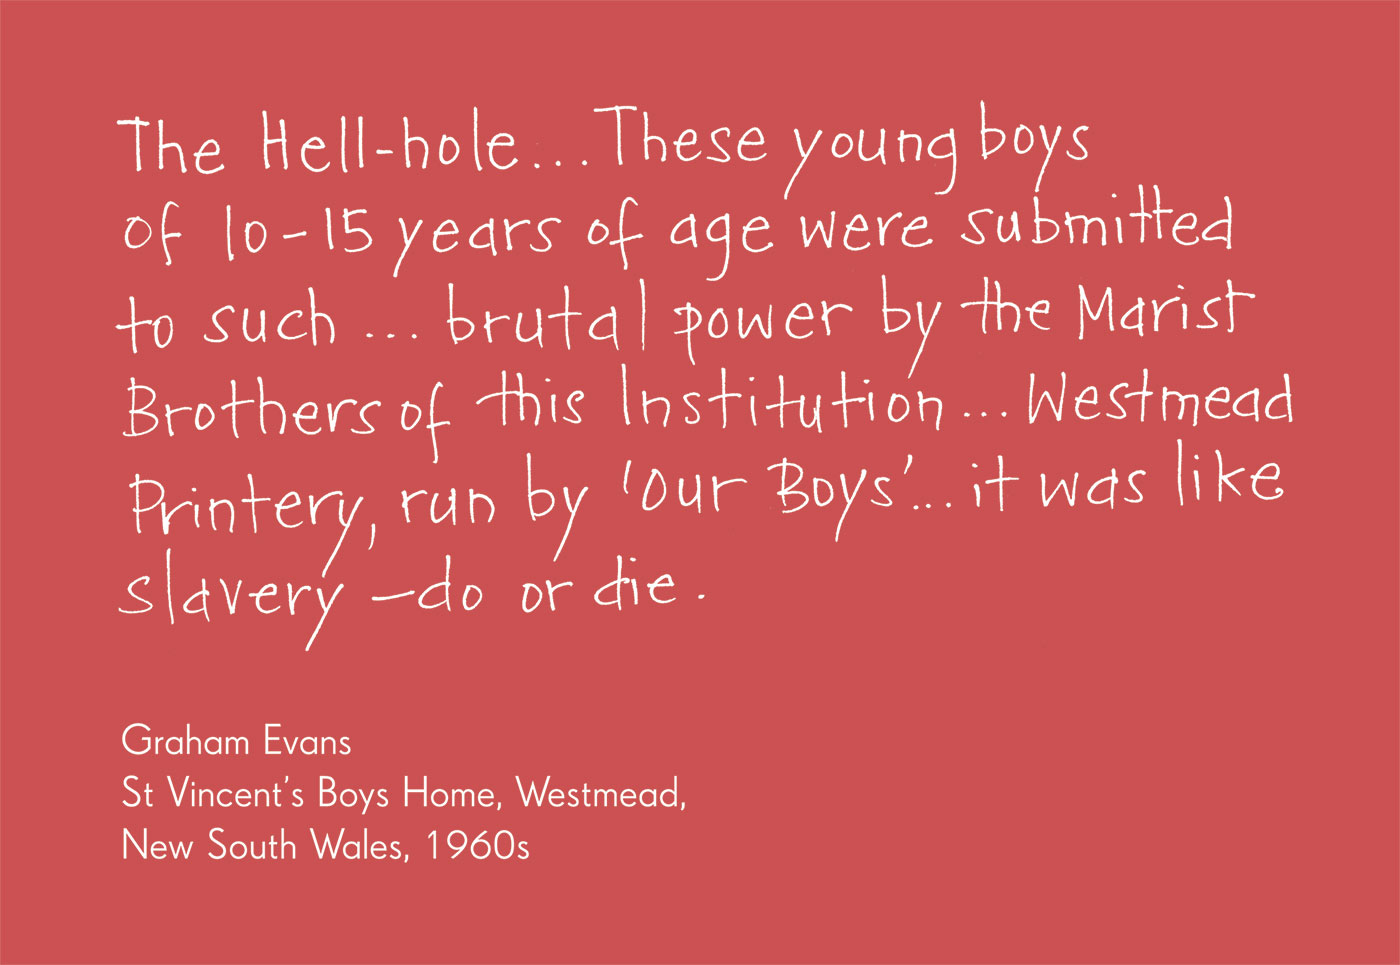 Exhibition graphic panel that reads: 'The Hell-hole … These young boys of 10–15 years of age were submitted to such  ... brutal power by the Marist Brothers of this Institution ... Westmead Printery, run by 'Our Boys' ... it was like slavery — do or die', attributed to 'Graham Evans, St Vincent's Boys Home, Westmead, New South Wales, 1960s'. - click to view larger image